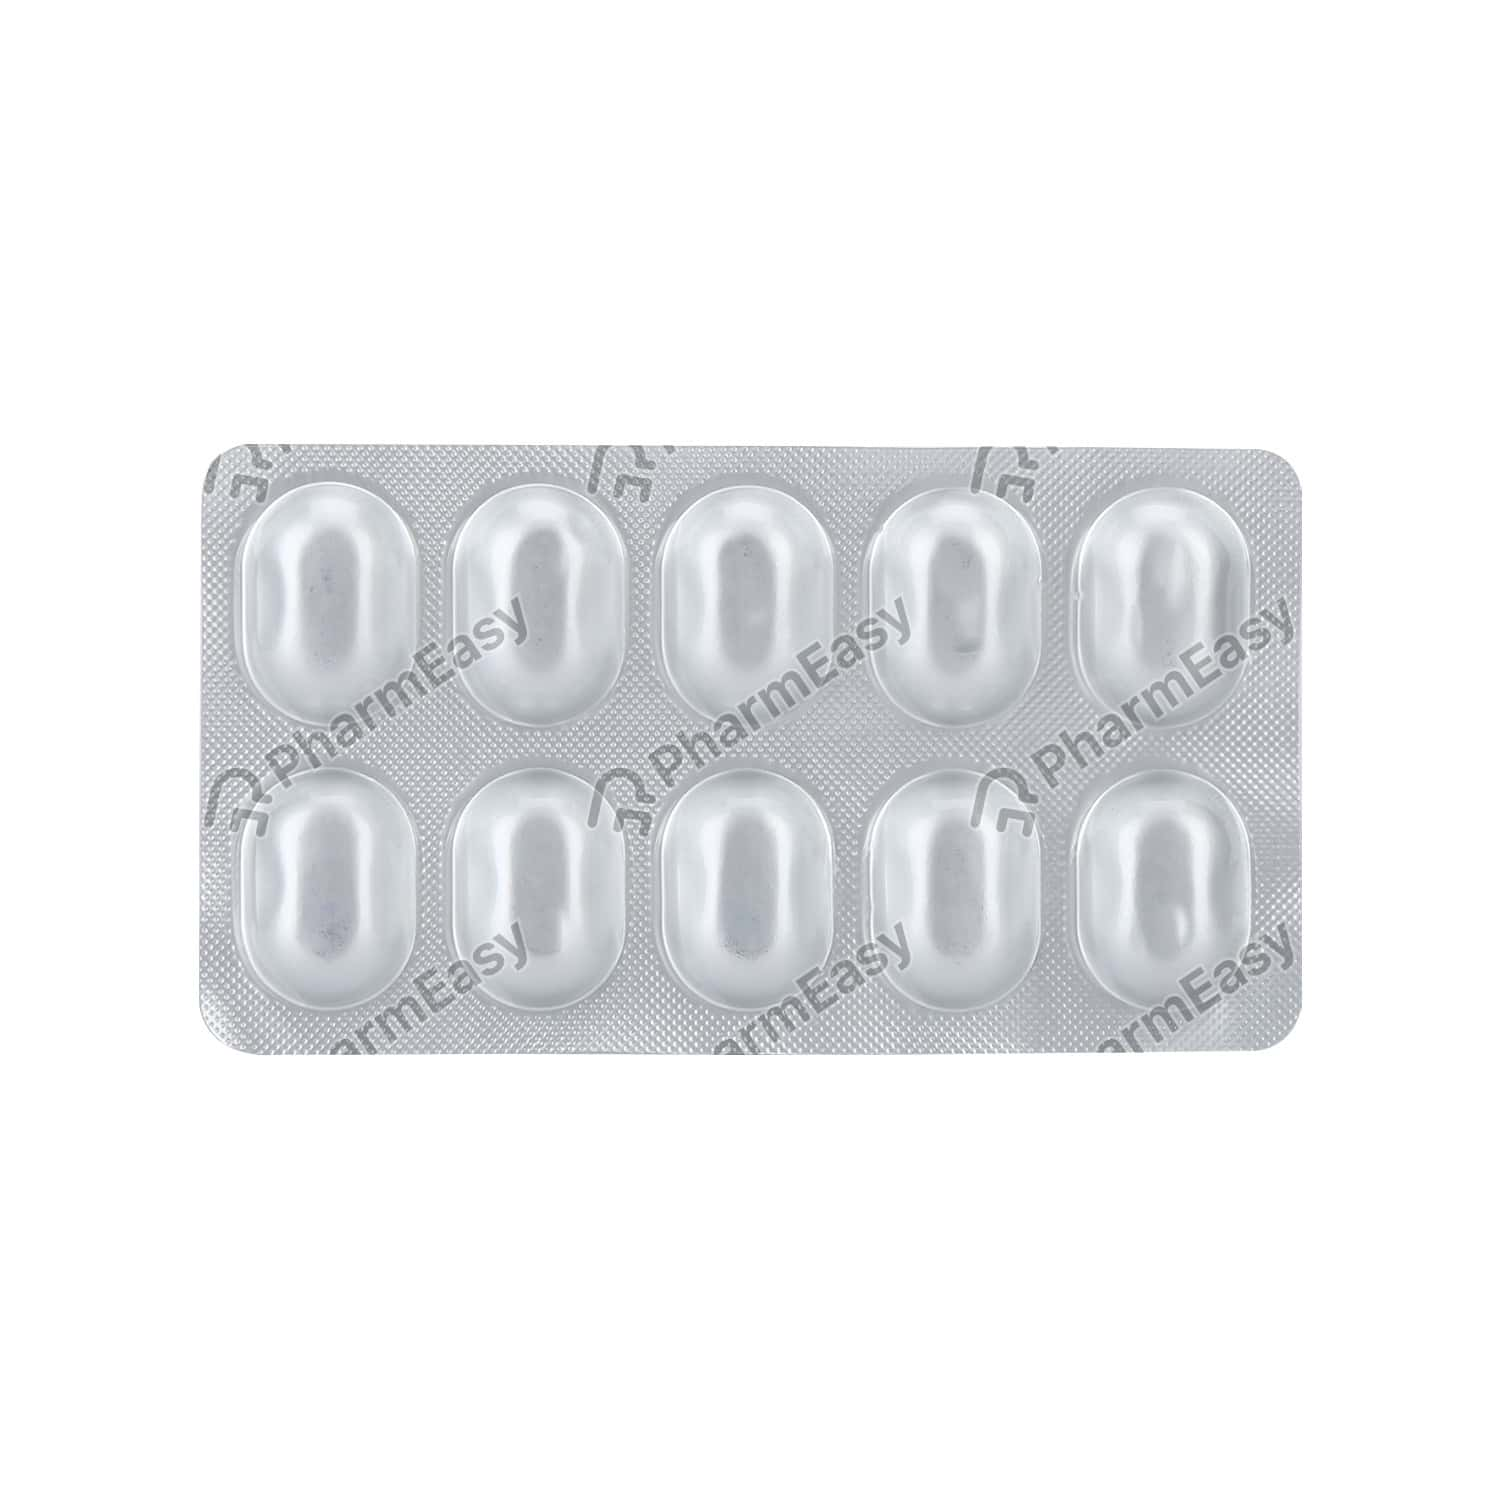 Zenflox 400mg Tablet